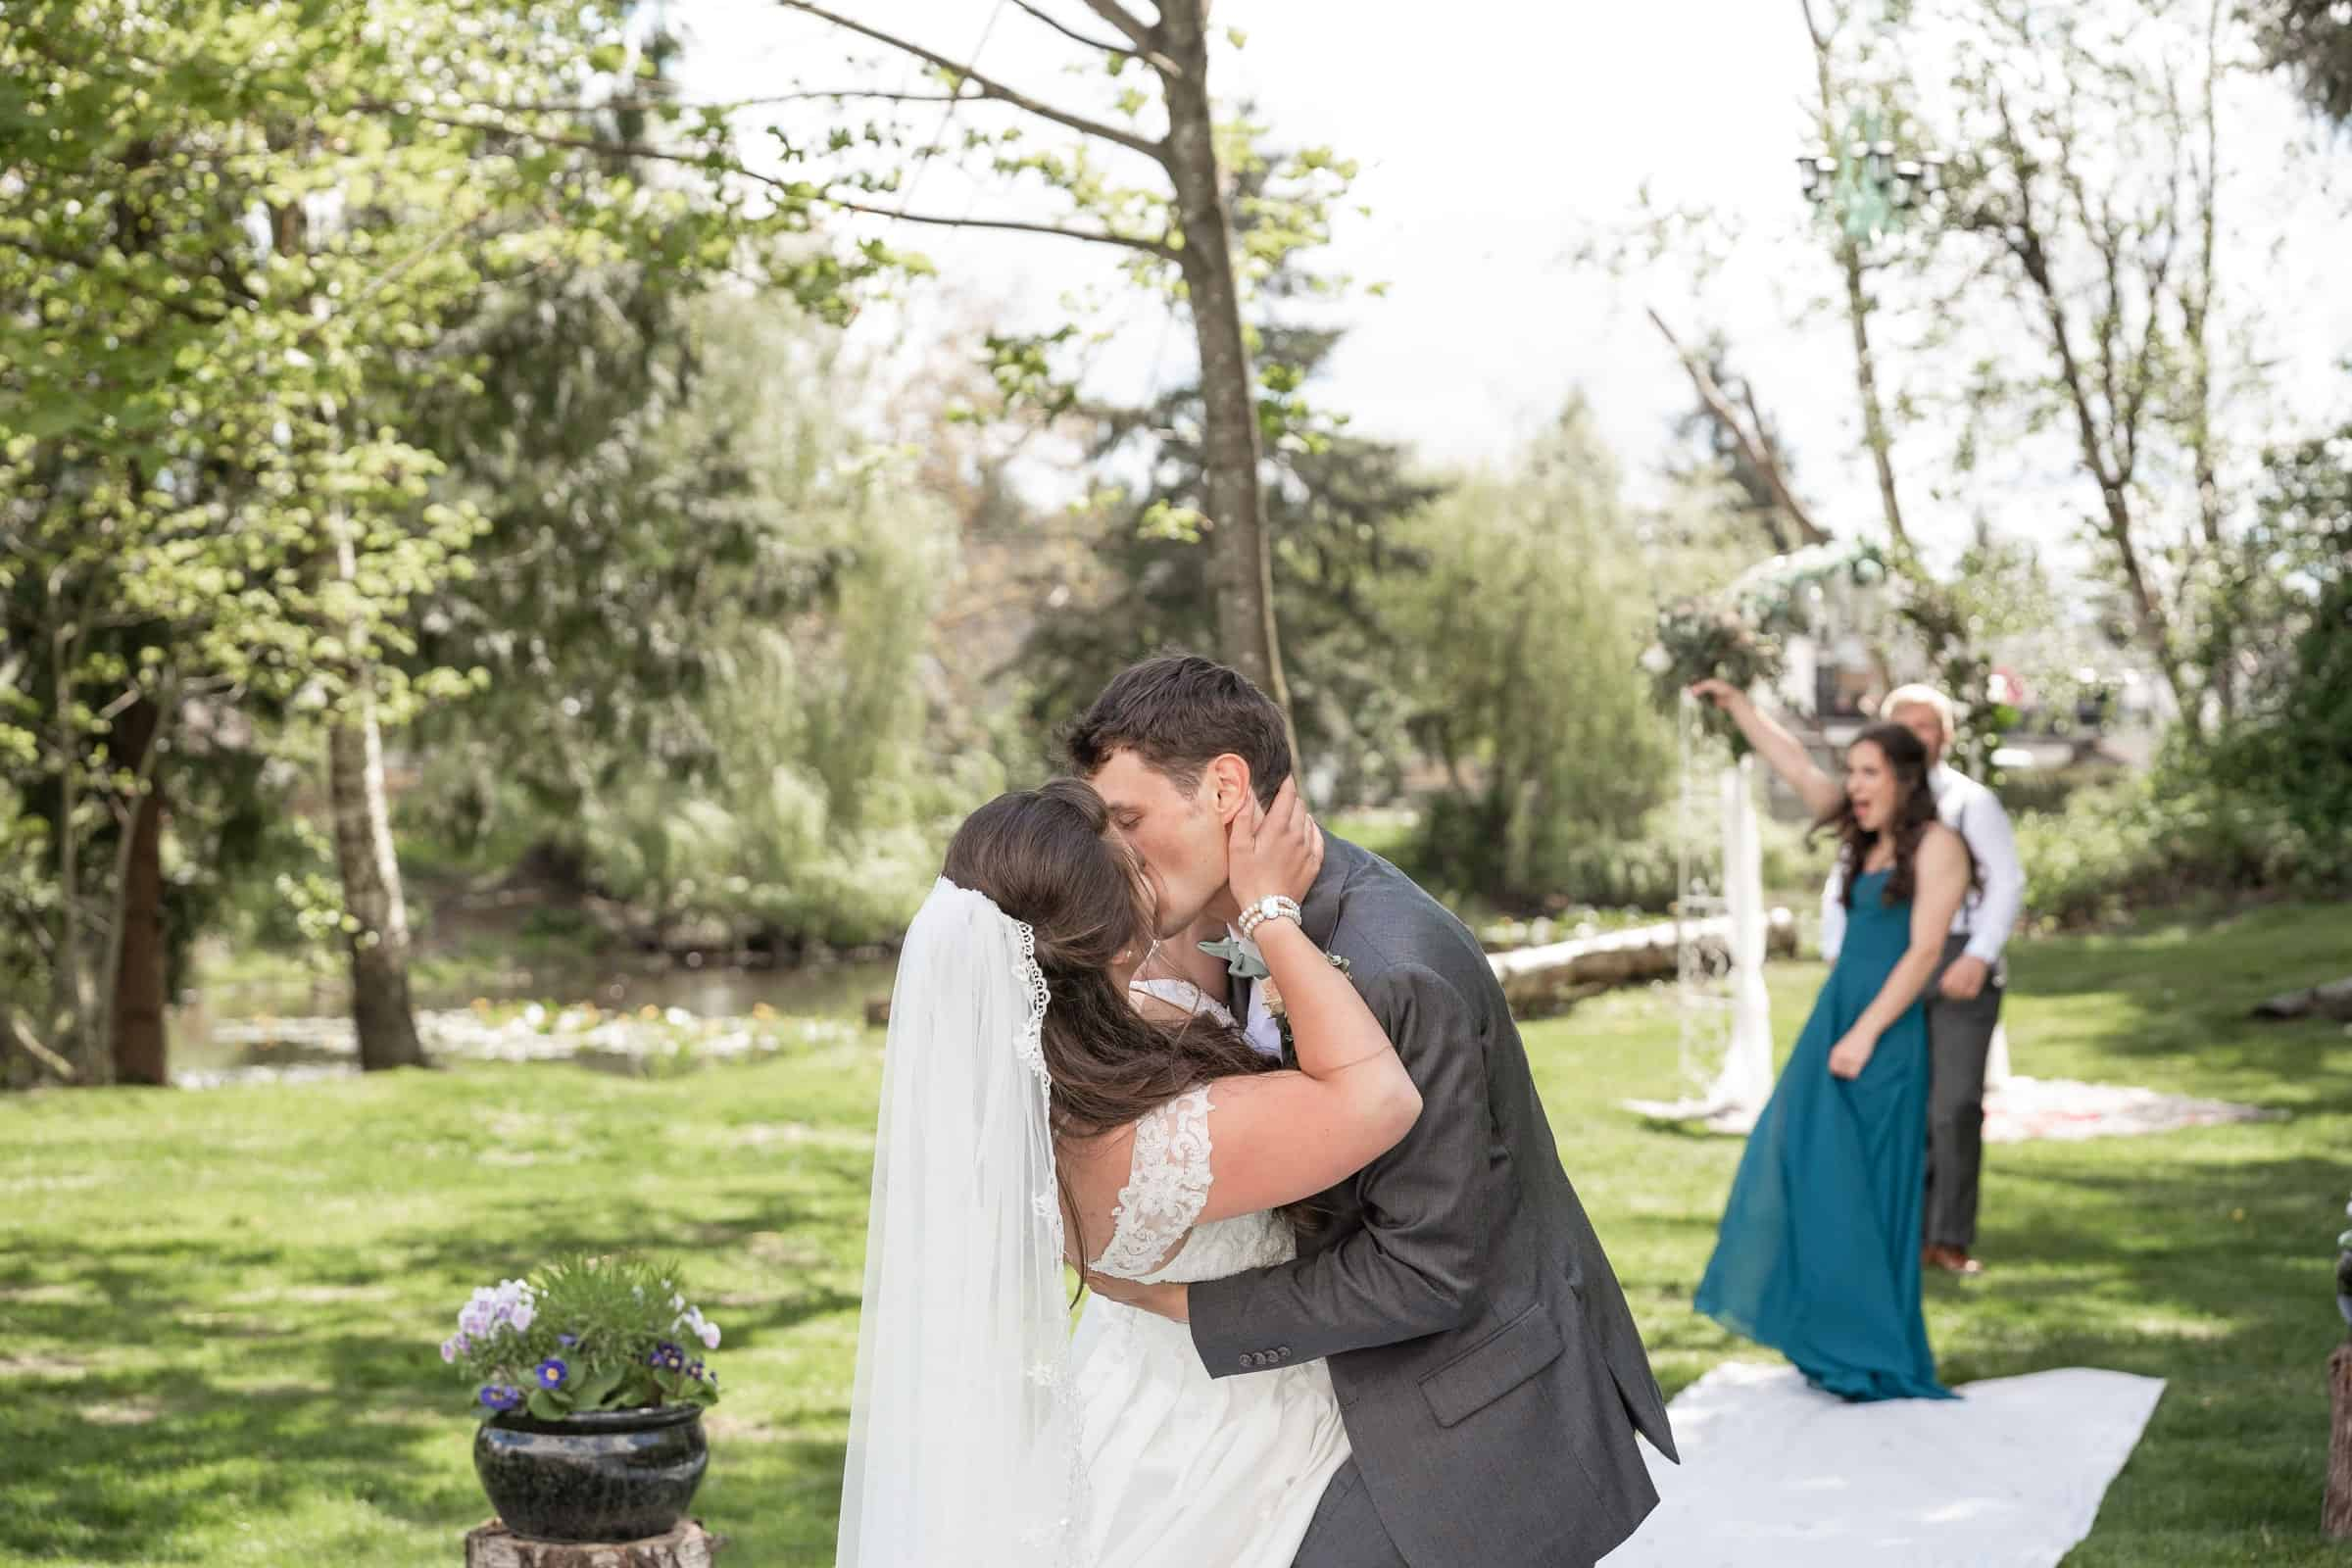 bride and groom kissing with people celebrating in background